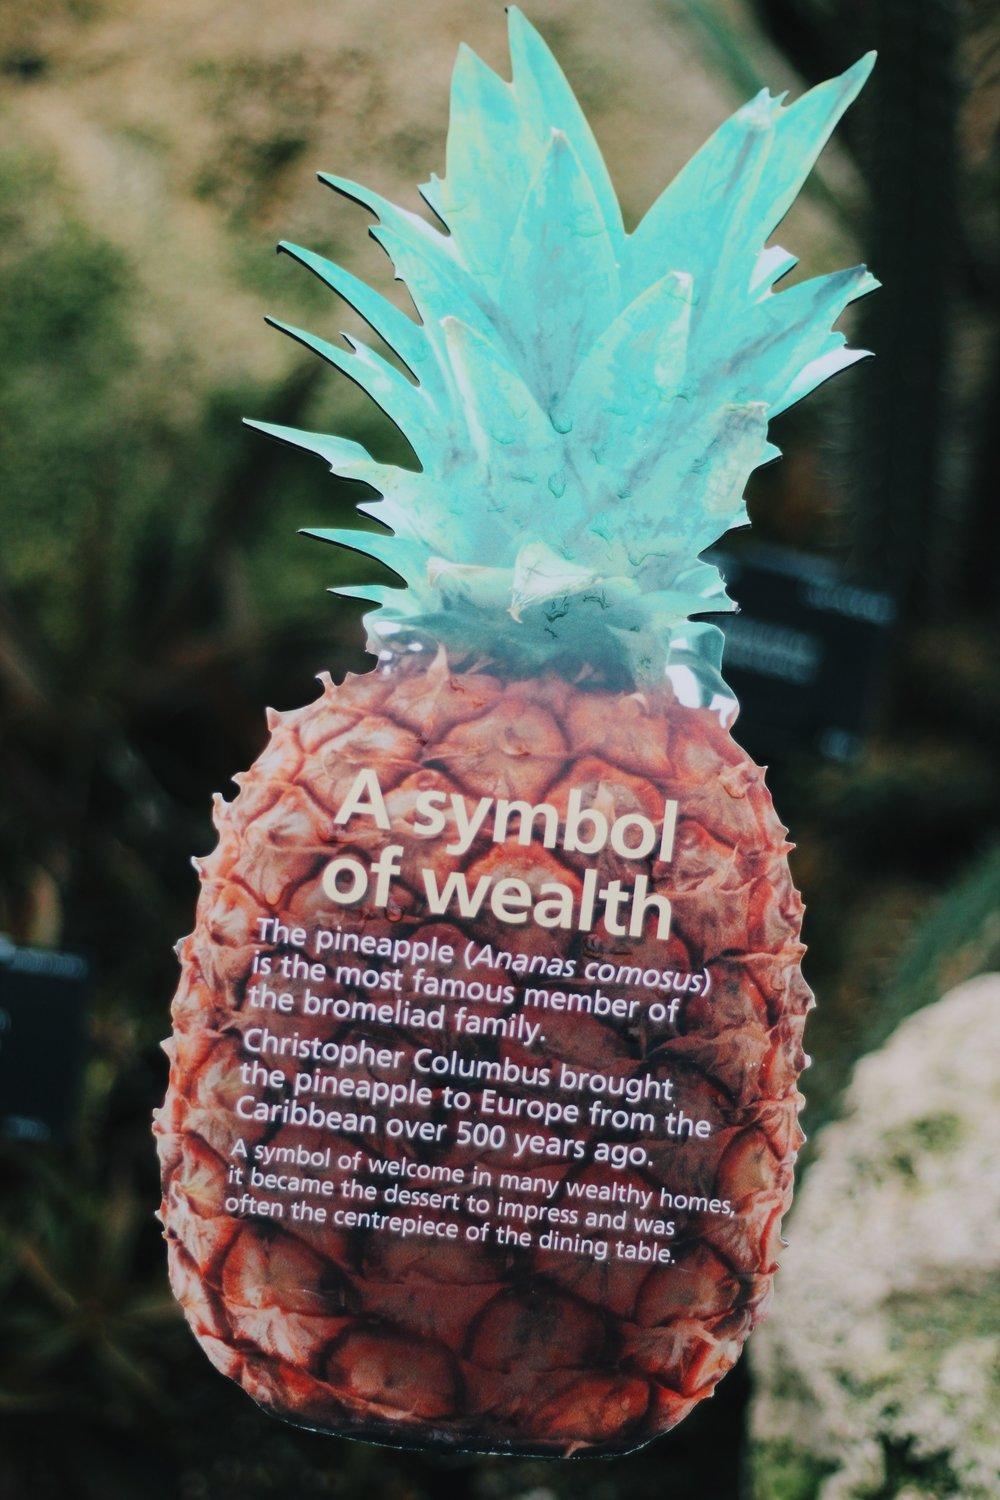 I found this so cool because the national fruit of Antigua and Barbuda is the [Black] Pineapple. Our National Symbol is a symbol of wealth